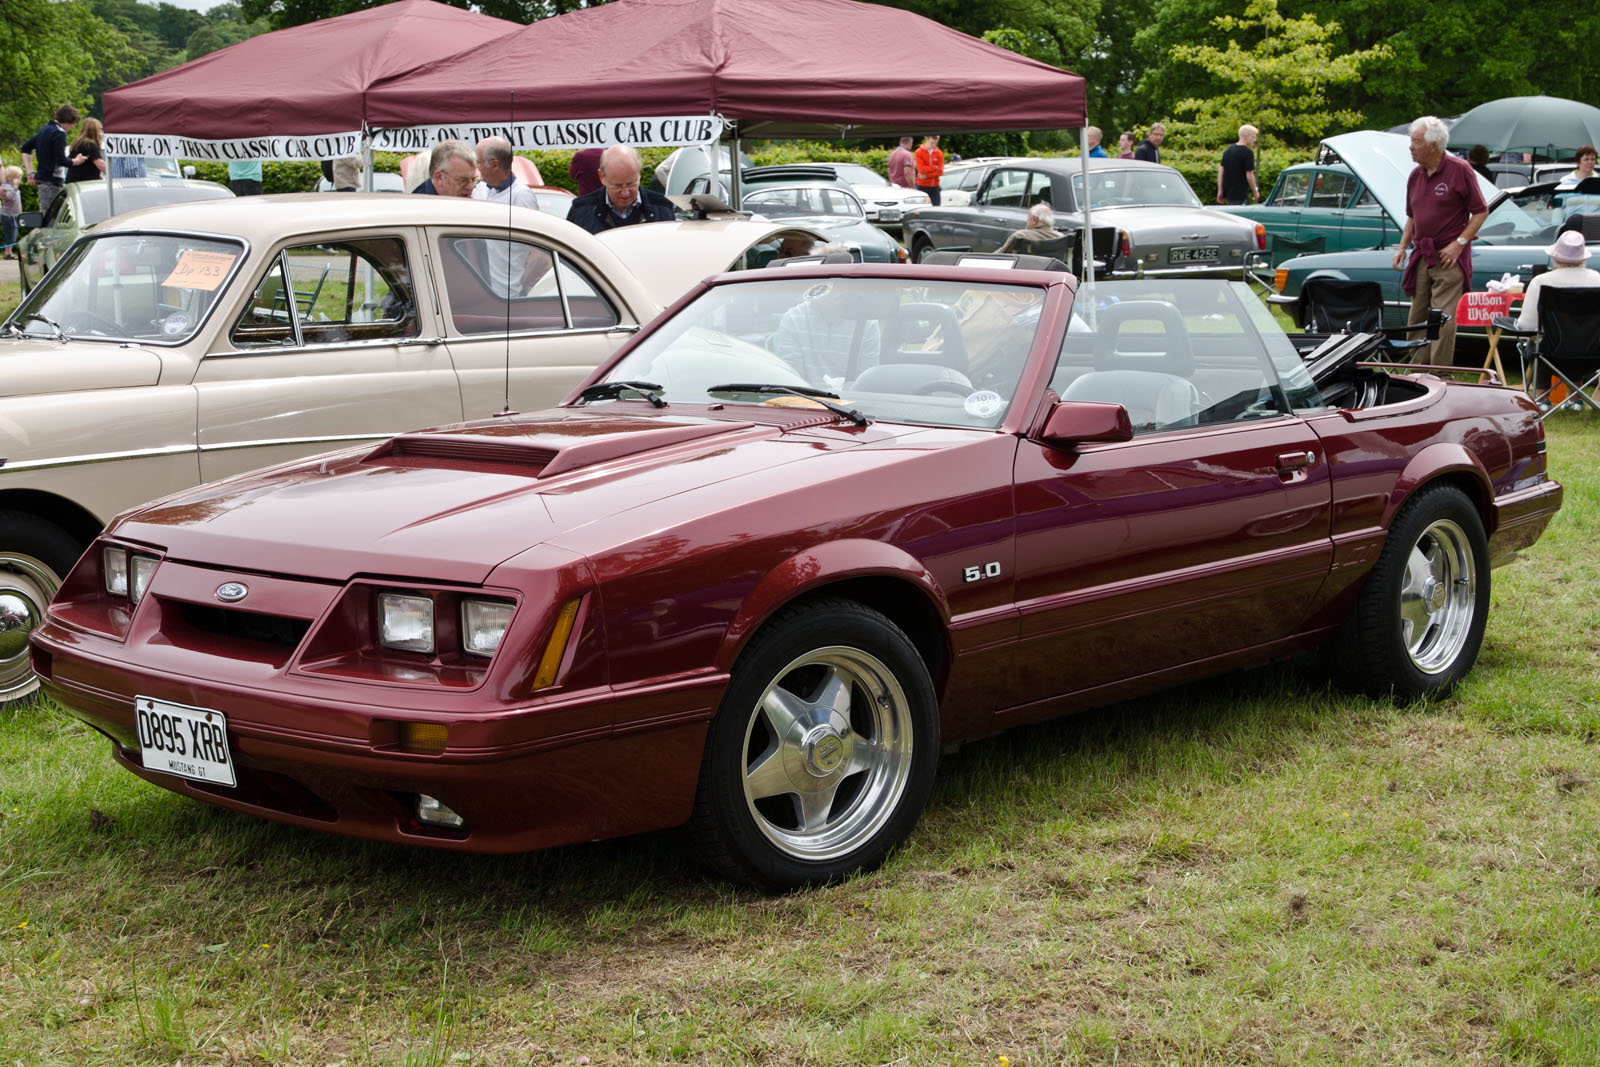 Fileford Mustang Gt Convertible 1986 9188456928 Wikimedia Ford